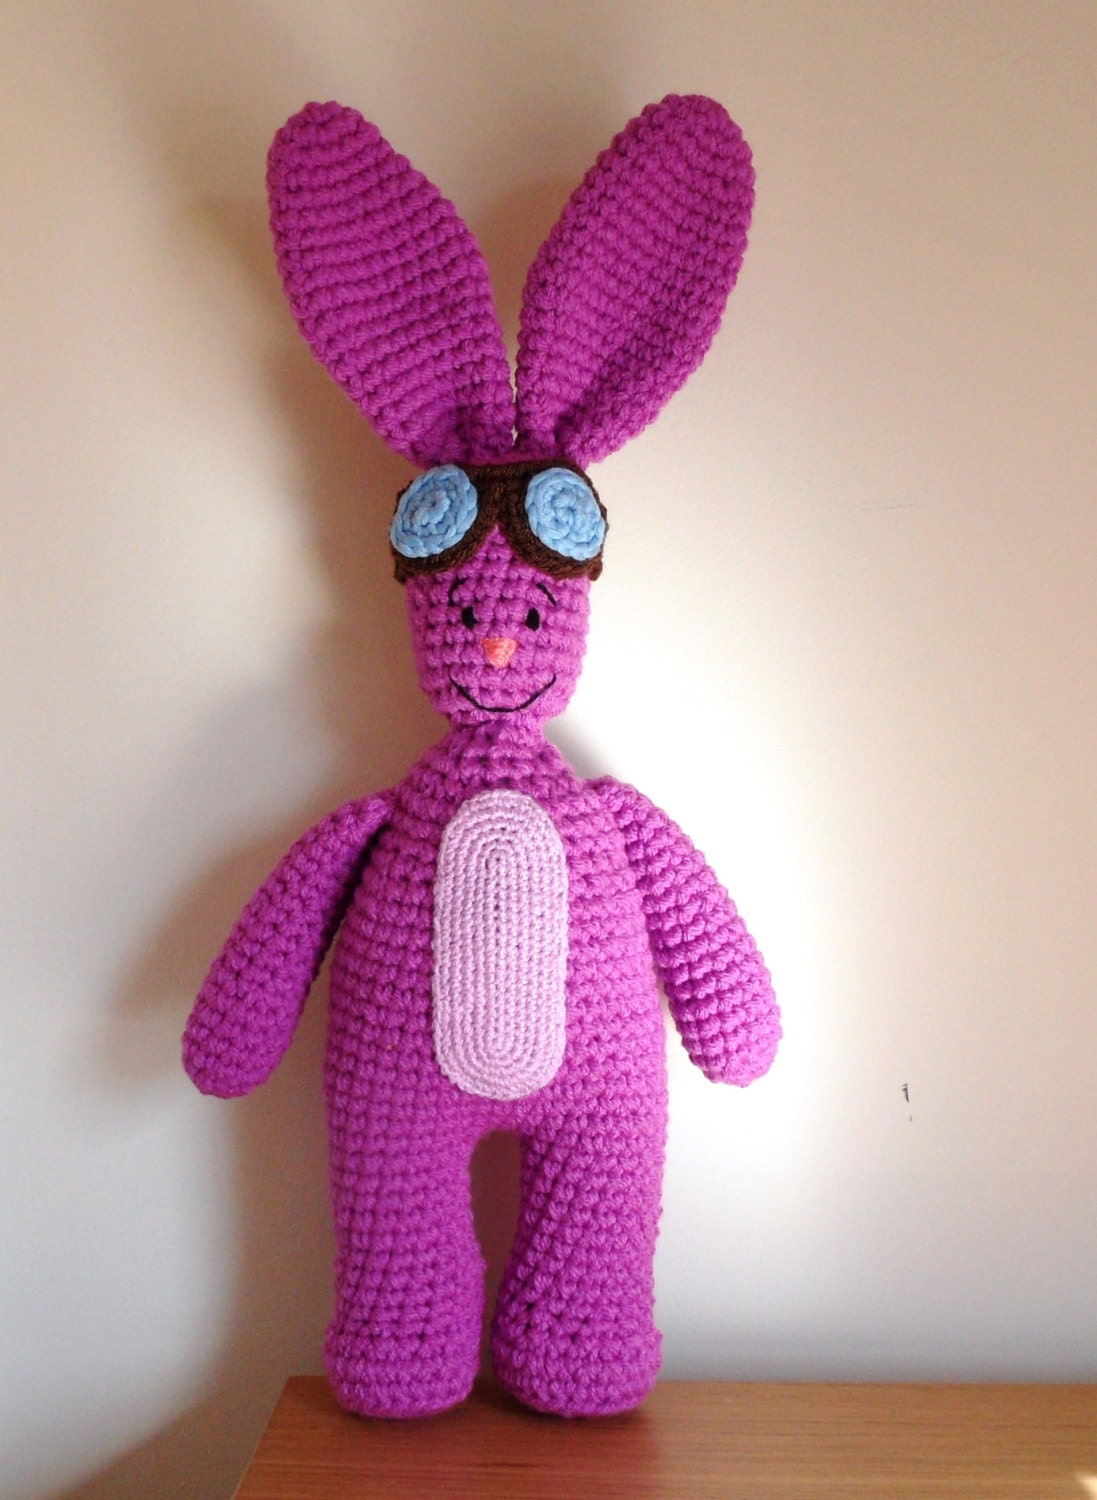 Purple Bunny in Aviator Glasses Mim Mim Bunny Inspired Crochet Soft Toy 19 Ready for Shipping